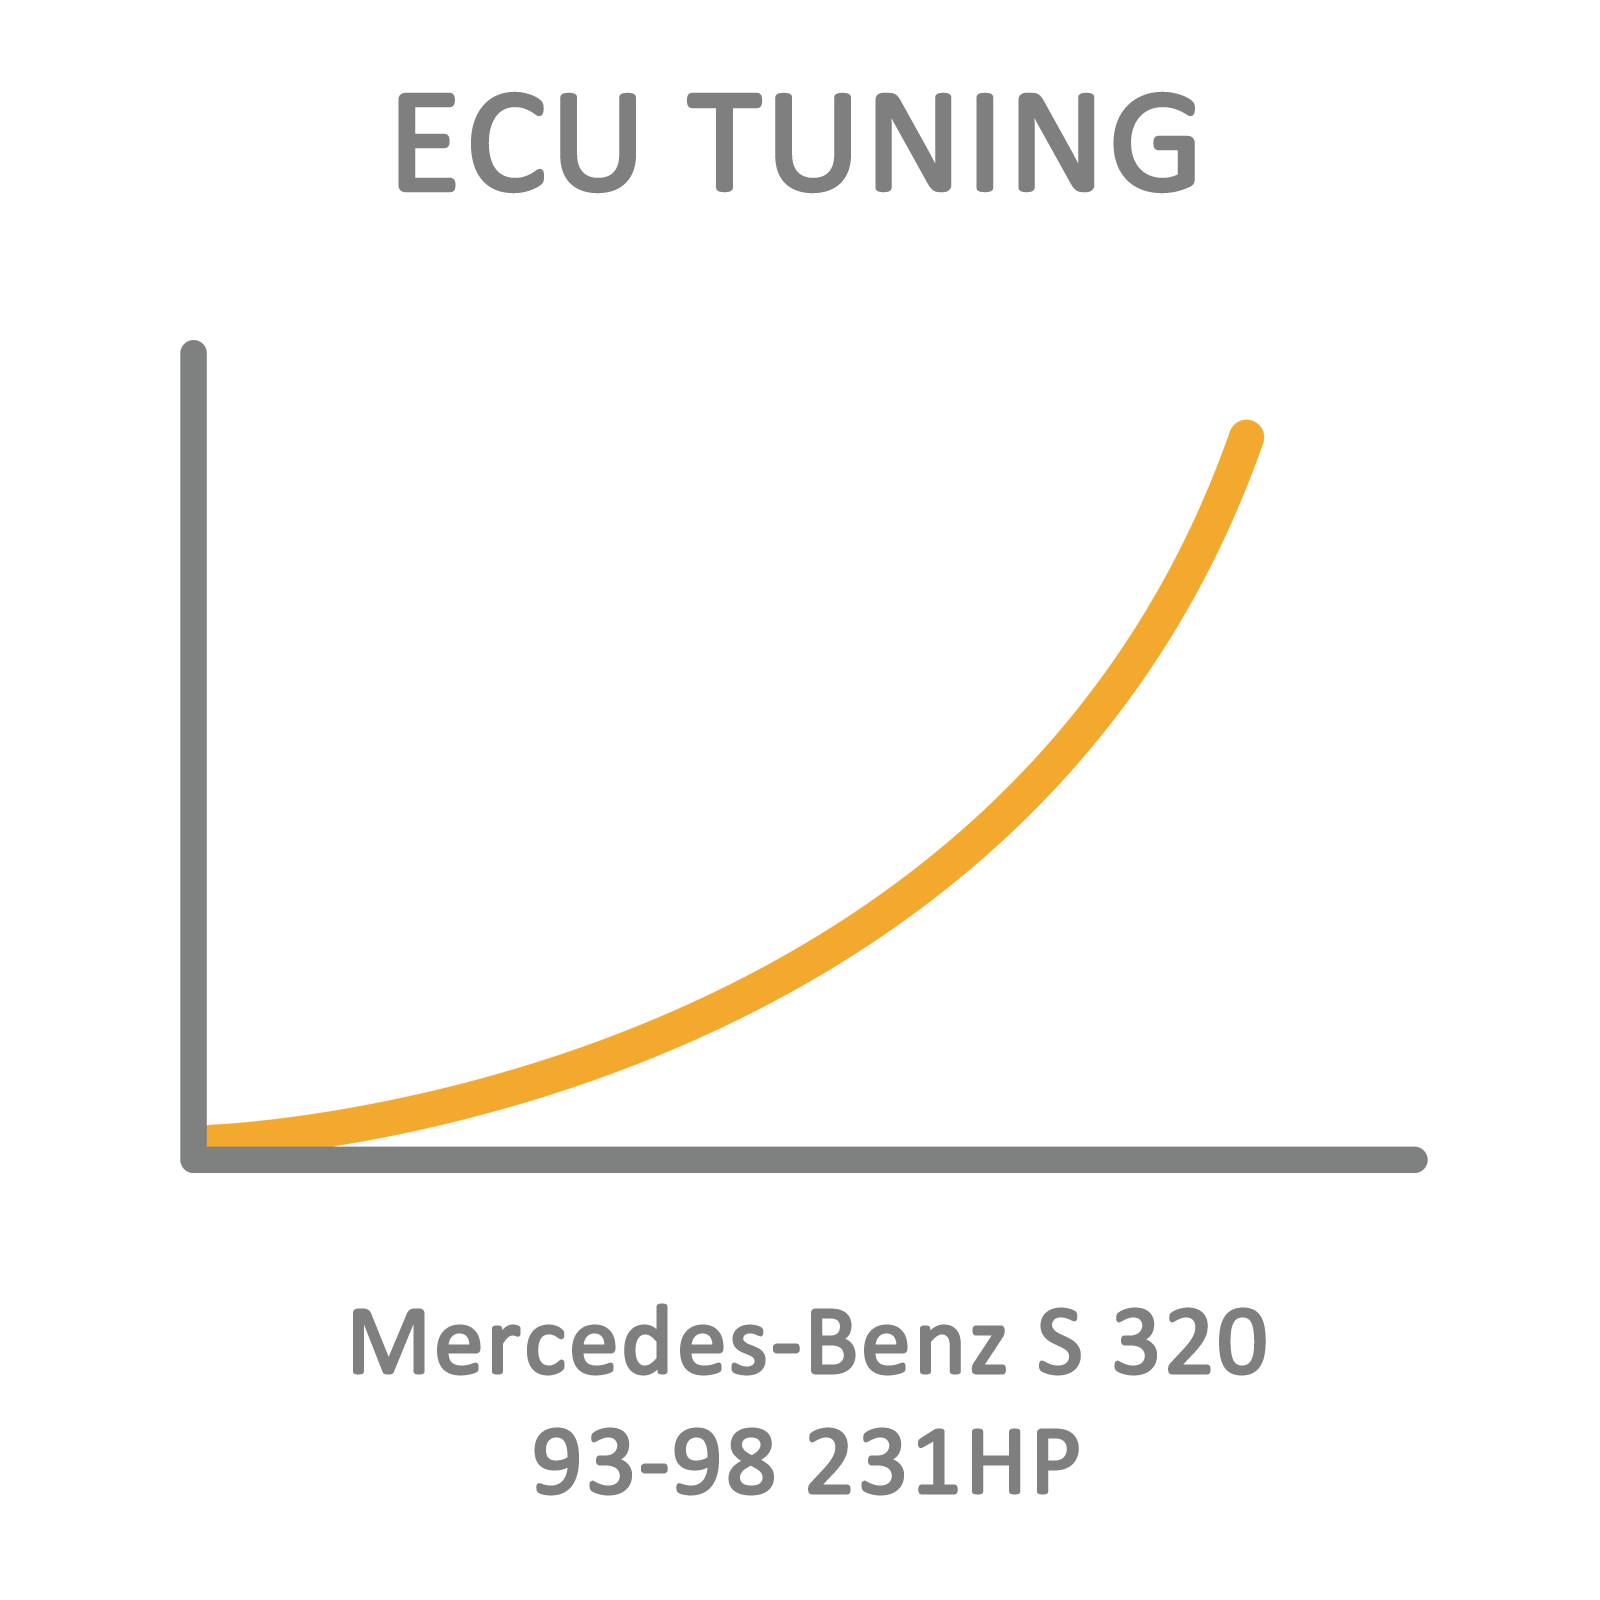 Mercedes-Benz S 320 93-98 231HP ECU Tuning Remapping